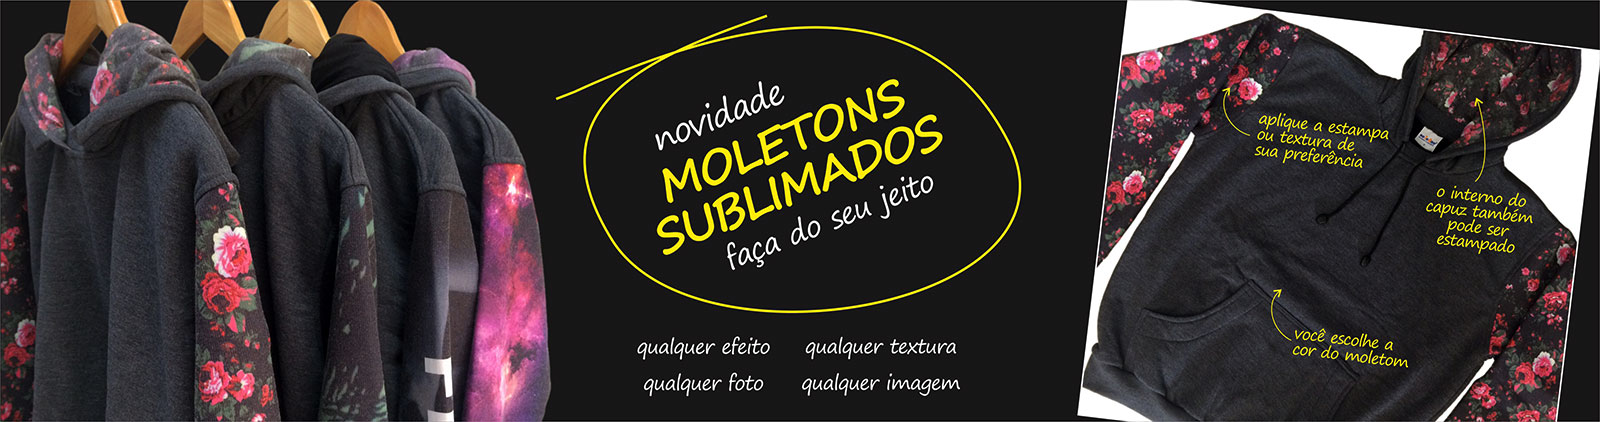 Moletons Sublimados